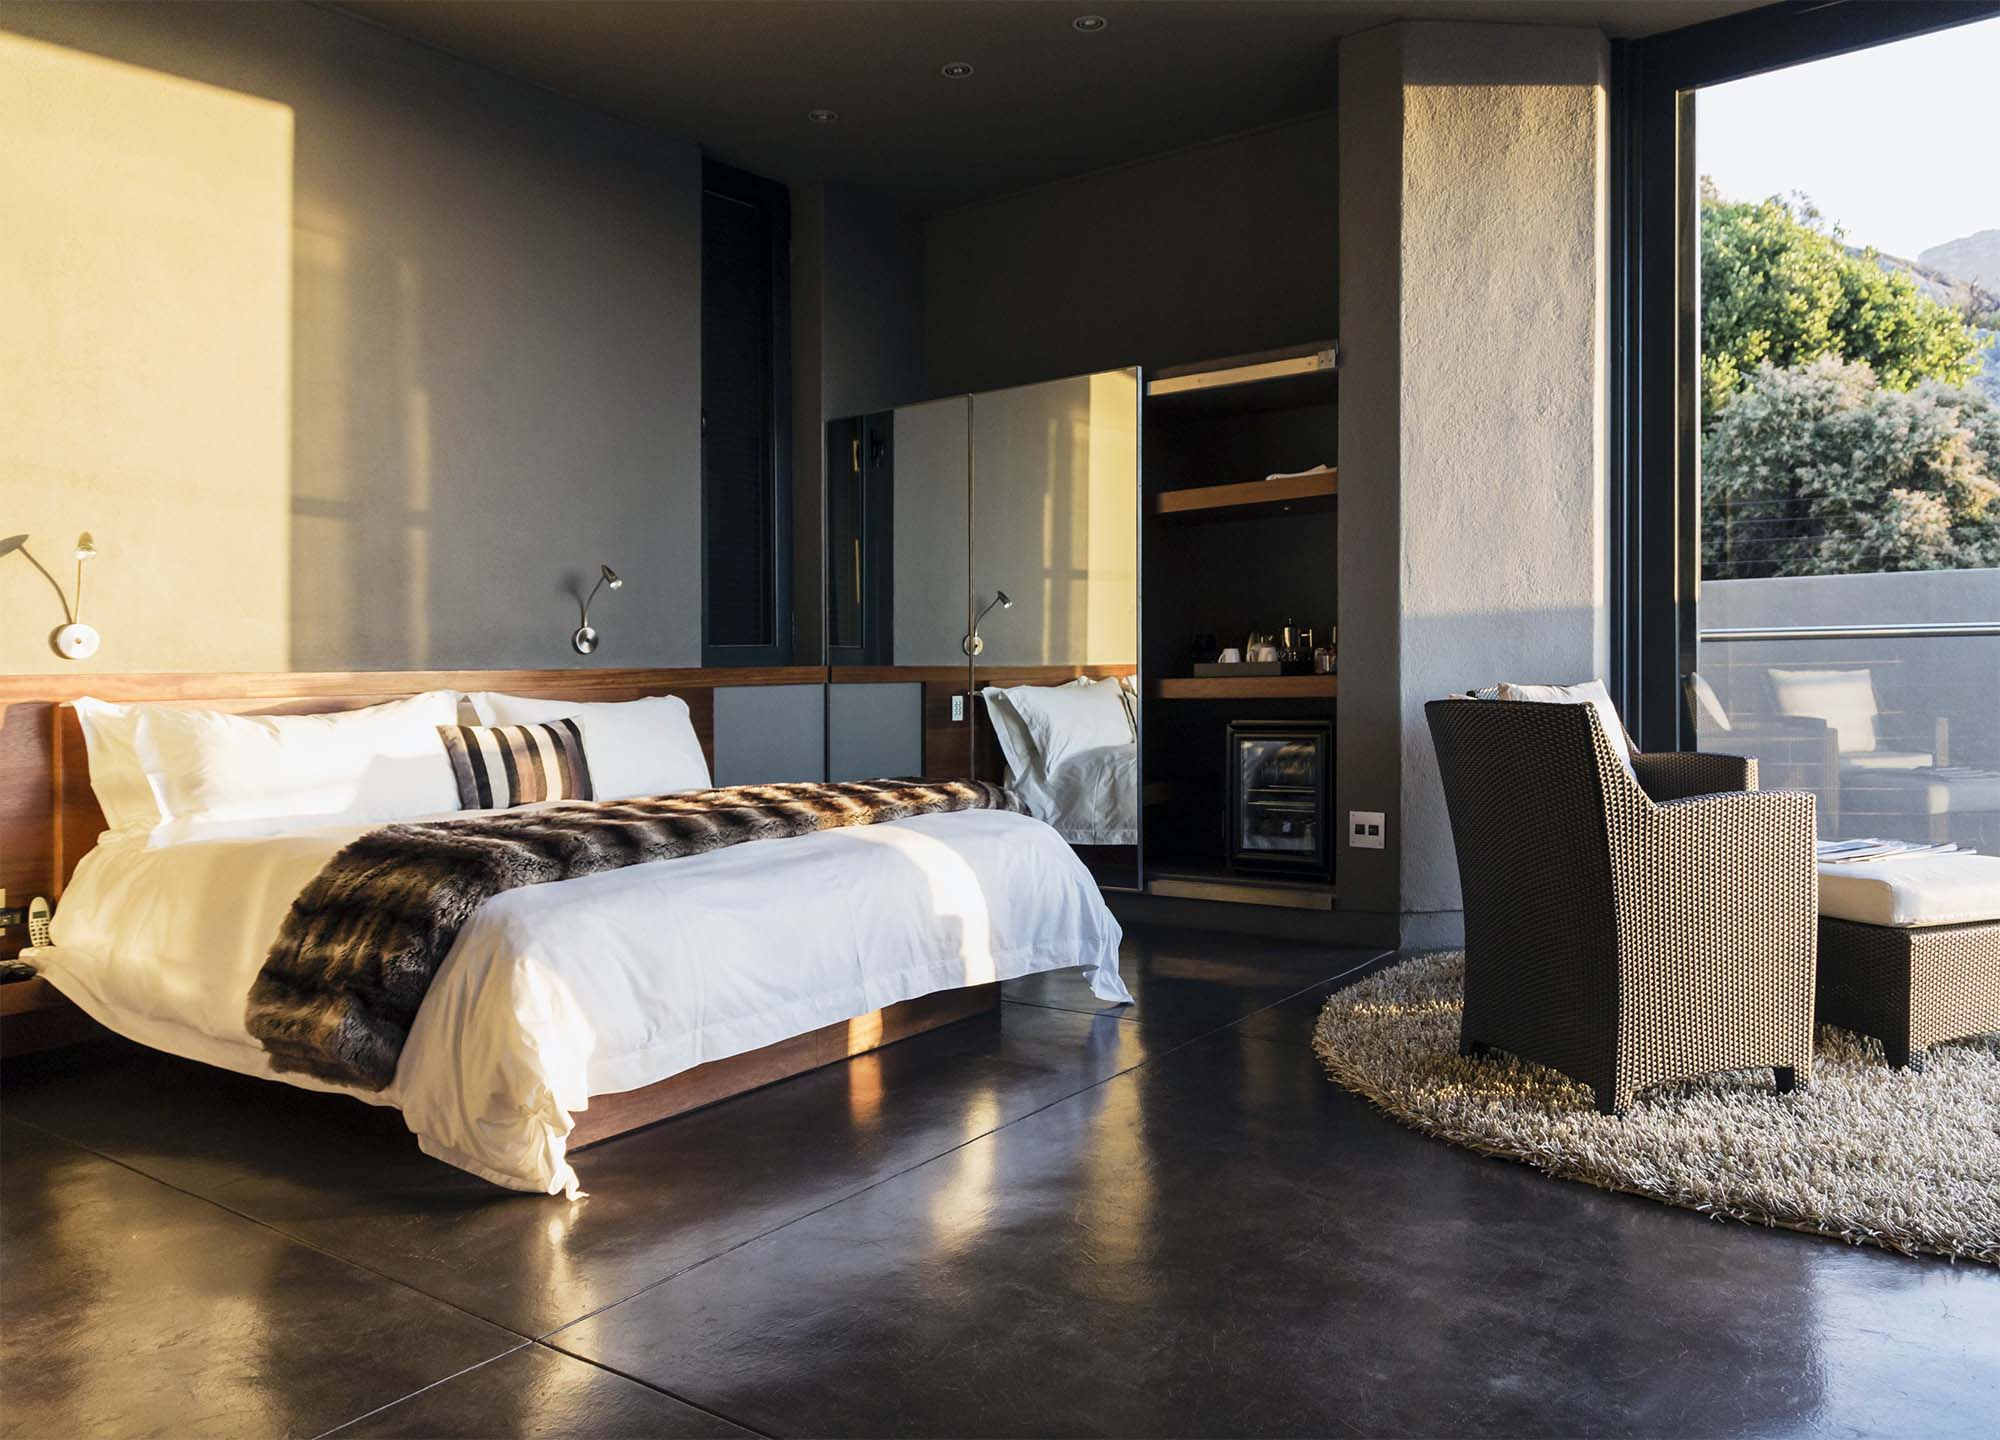 ultra modern master bedroom design with polished concrete floors gray walls floor to ceiling windows and doors